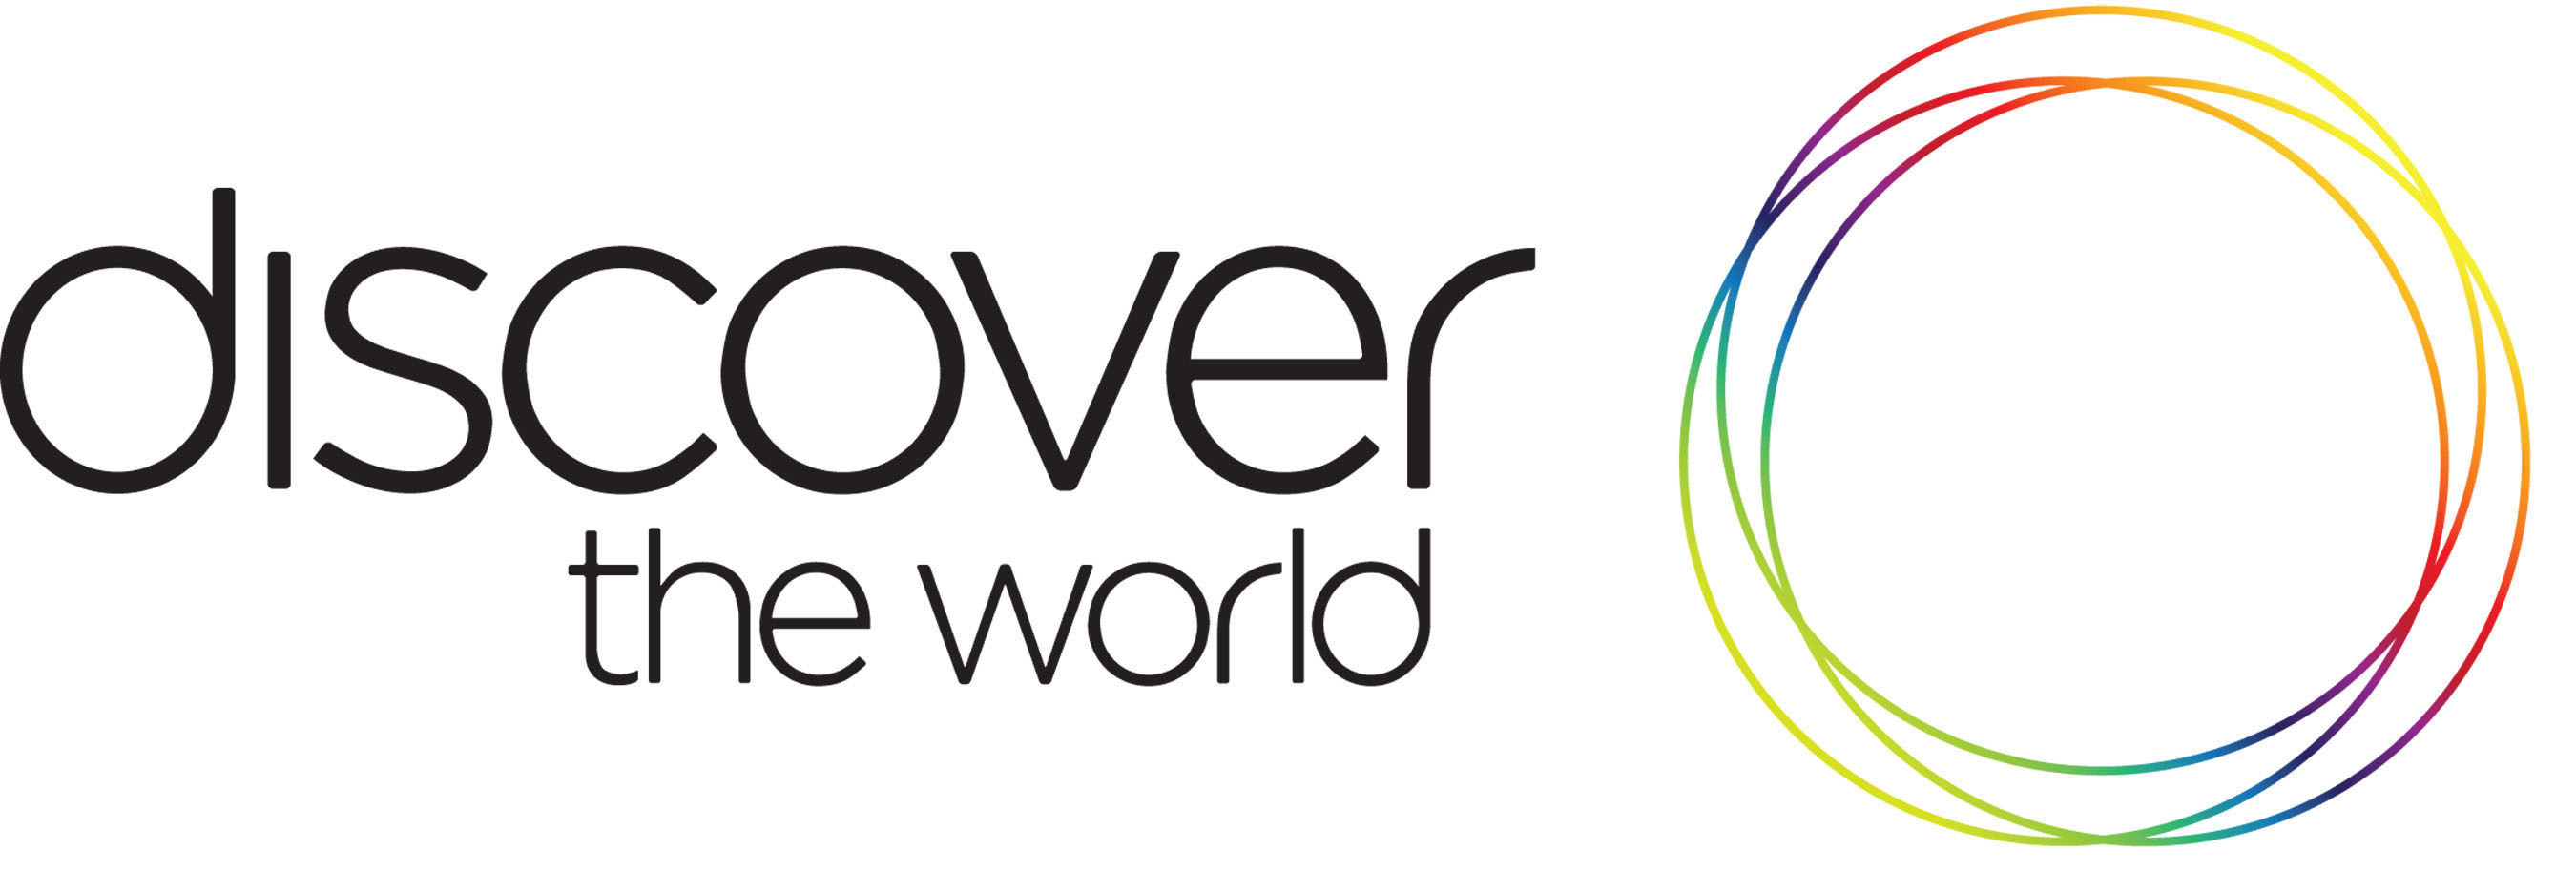 Flybe Appoints Discover The World As Its GSA In Key European Markets